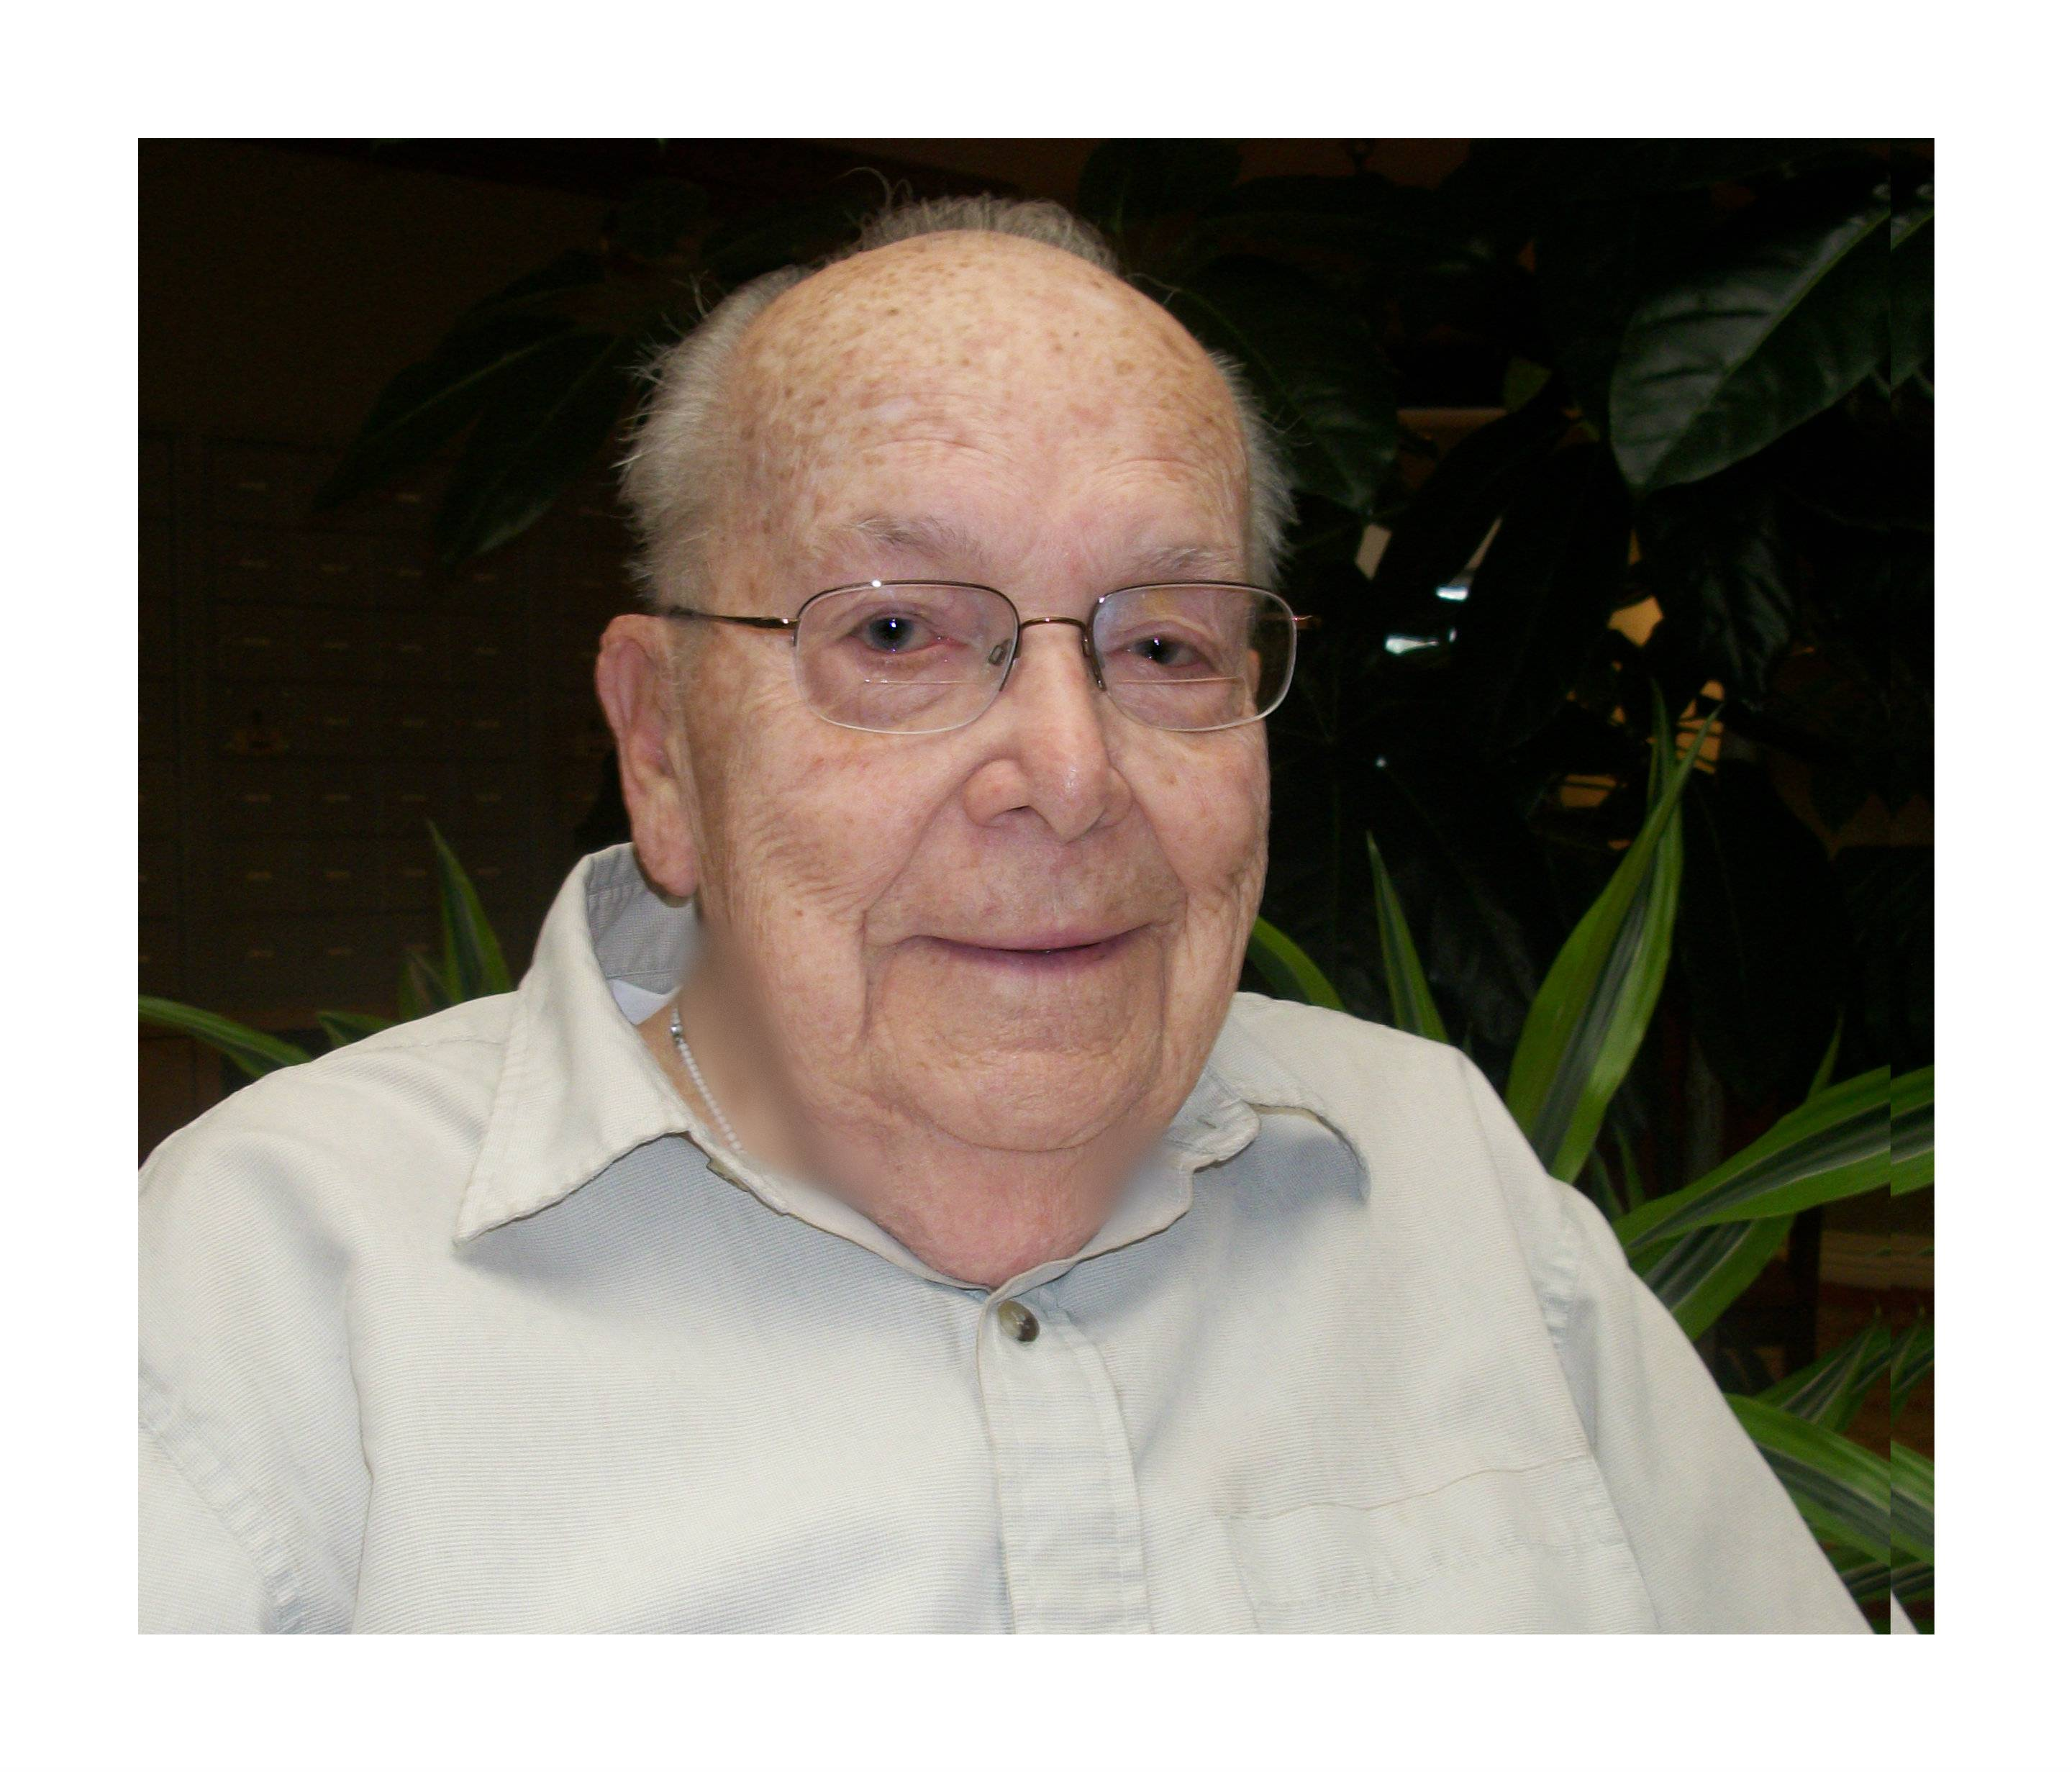 Robert Deitmer participated in Friendship Village's Weather the Winter promotion and has since made it his home.